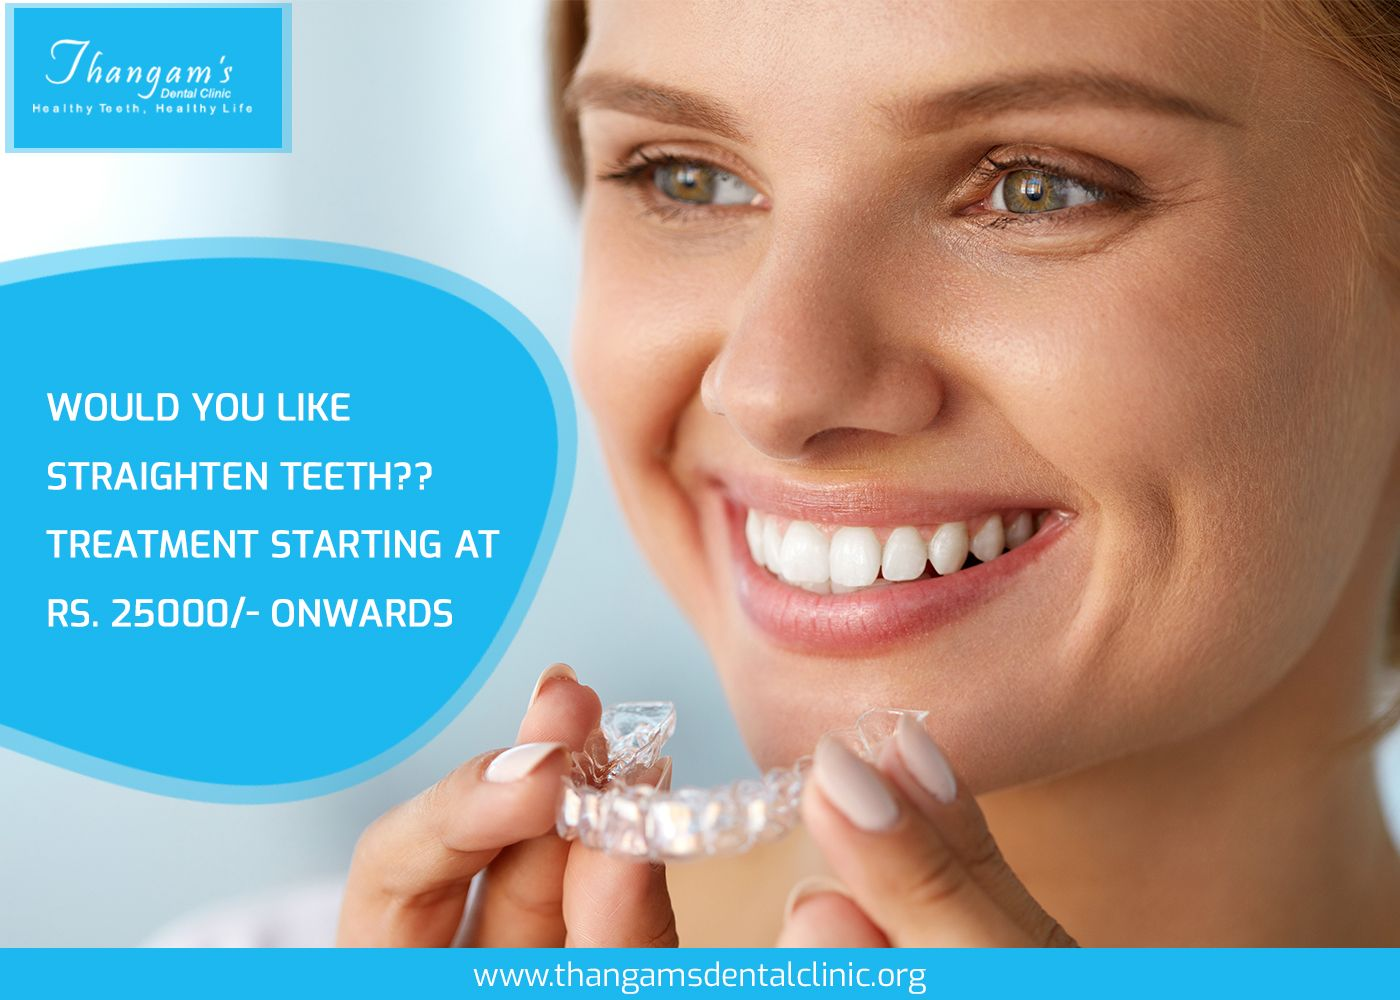 Orthodontic Treatments Benefits Make Better First Impressions